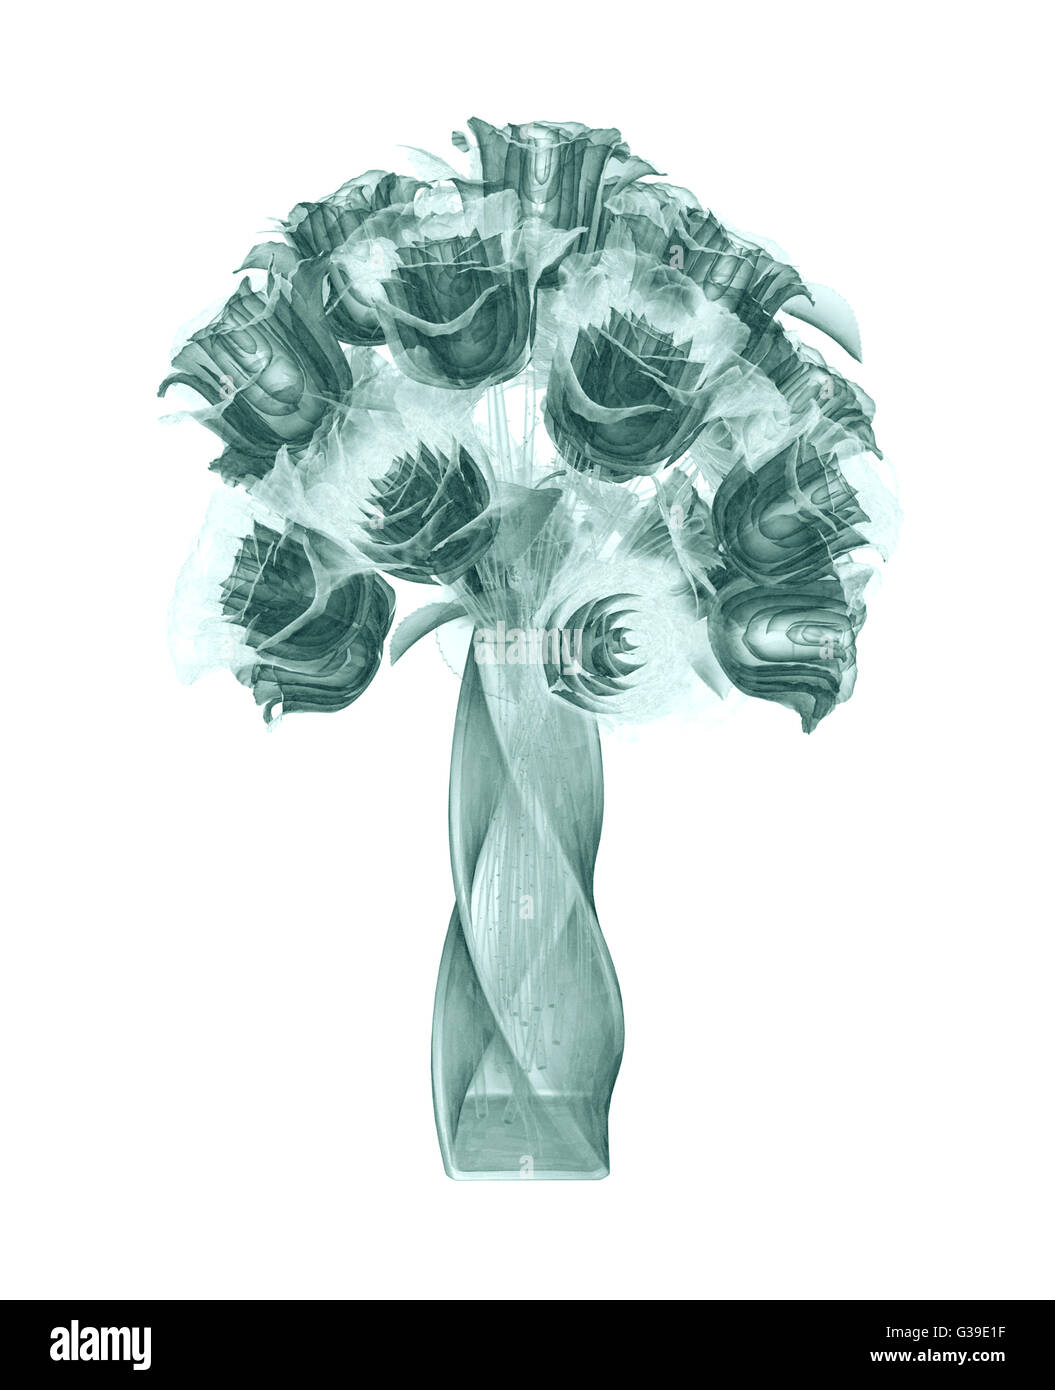 x-ray image of a flower  isolated on white , the rose 3d illustration - Stock Image